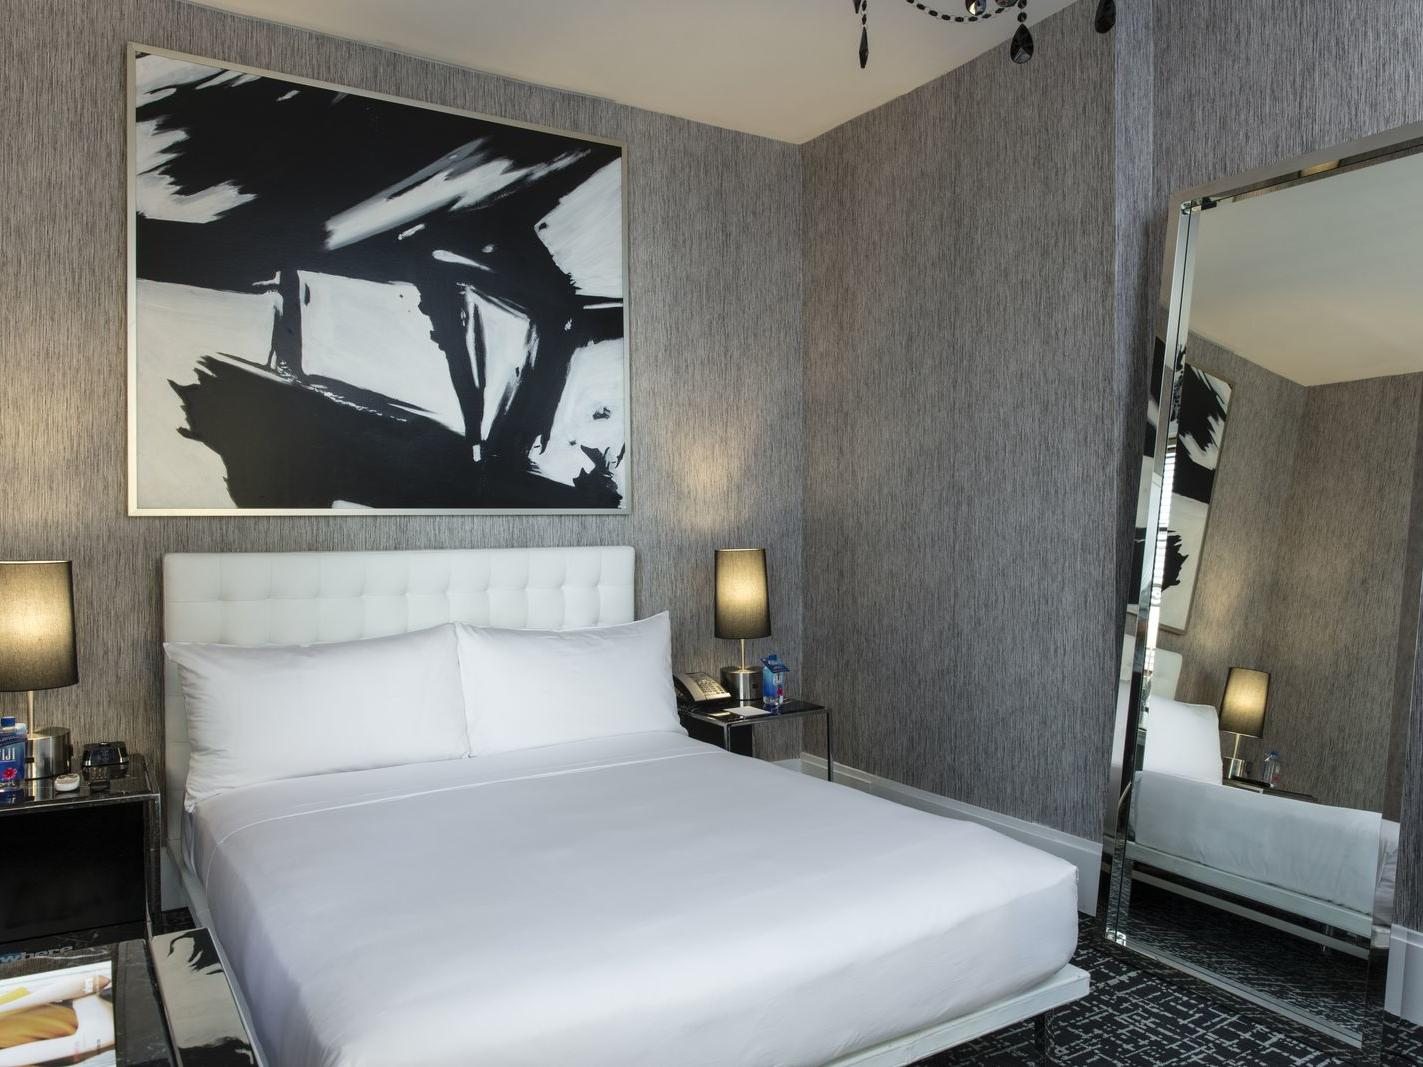 a large bed in a hotel room